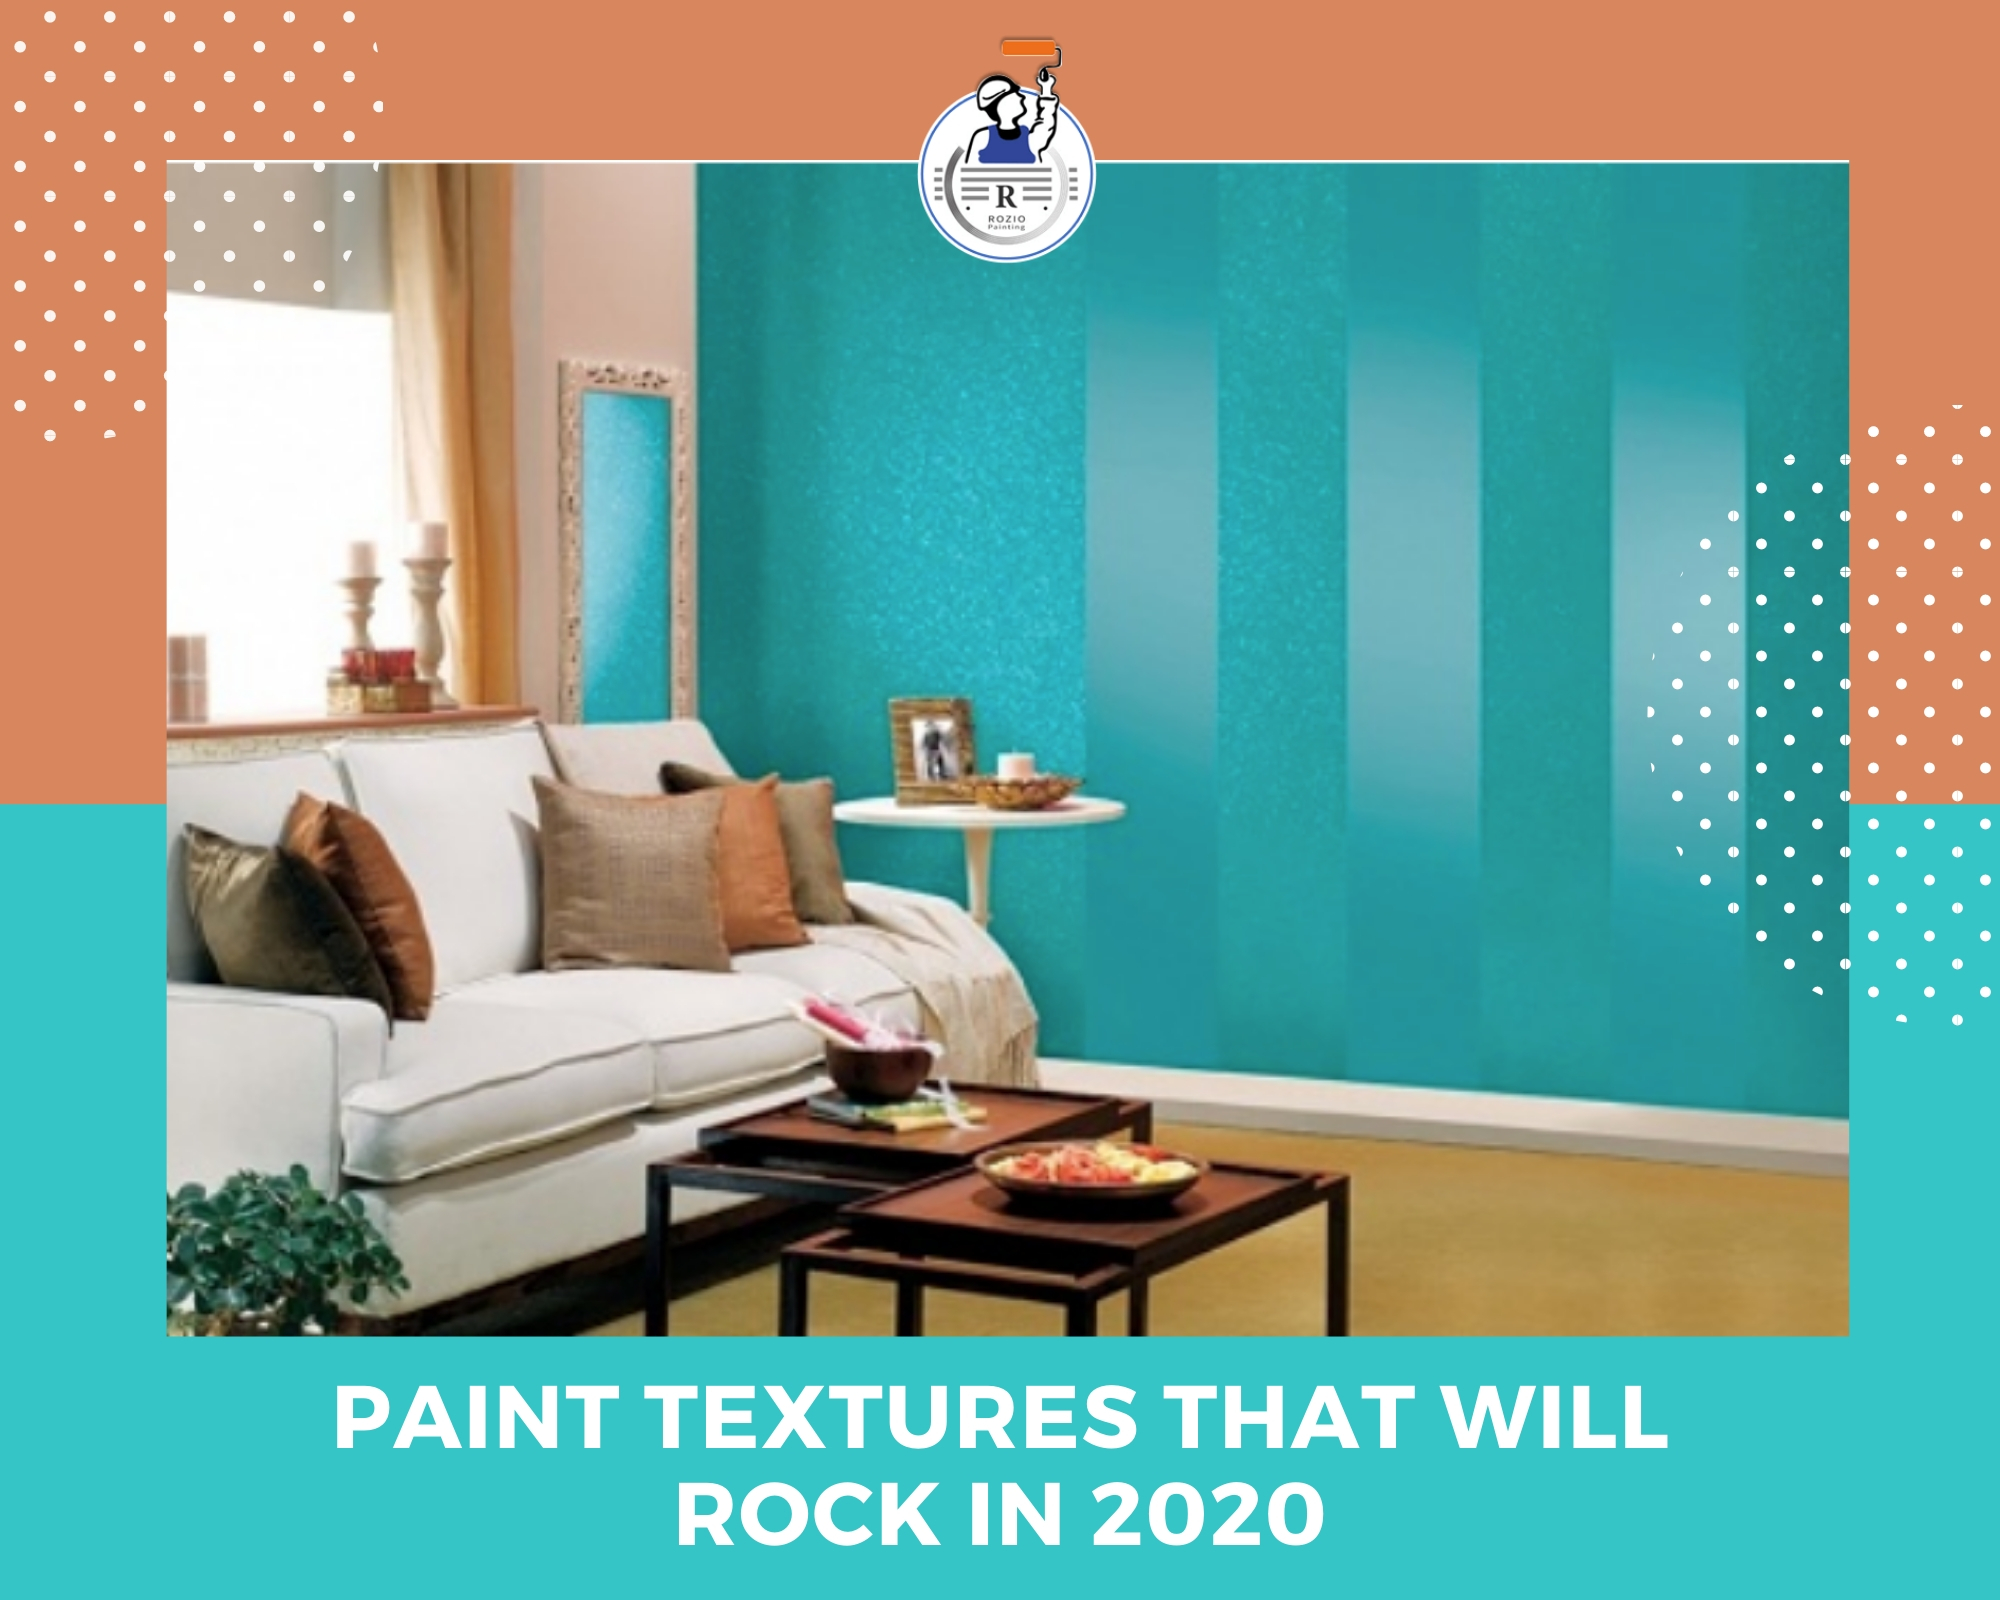 Paint texture that will rock in 2020